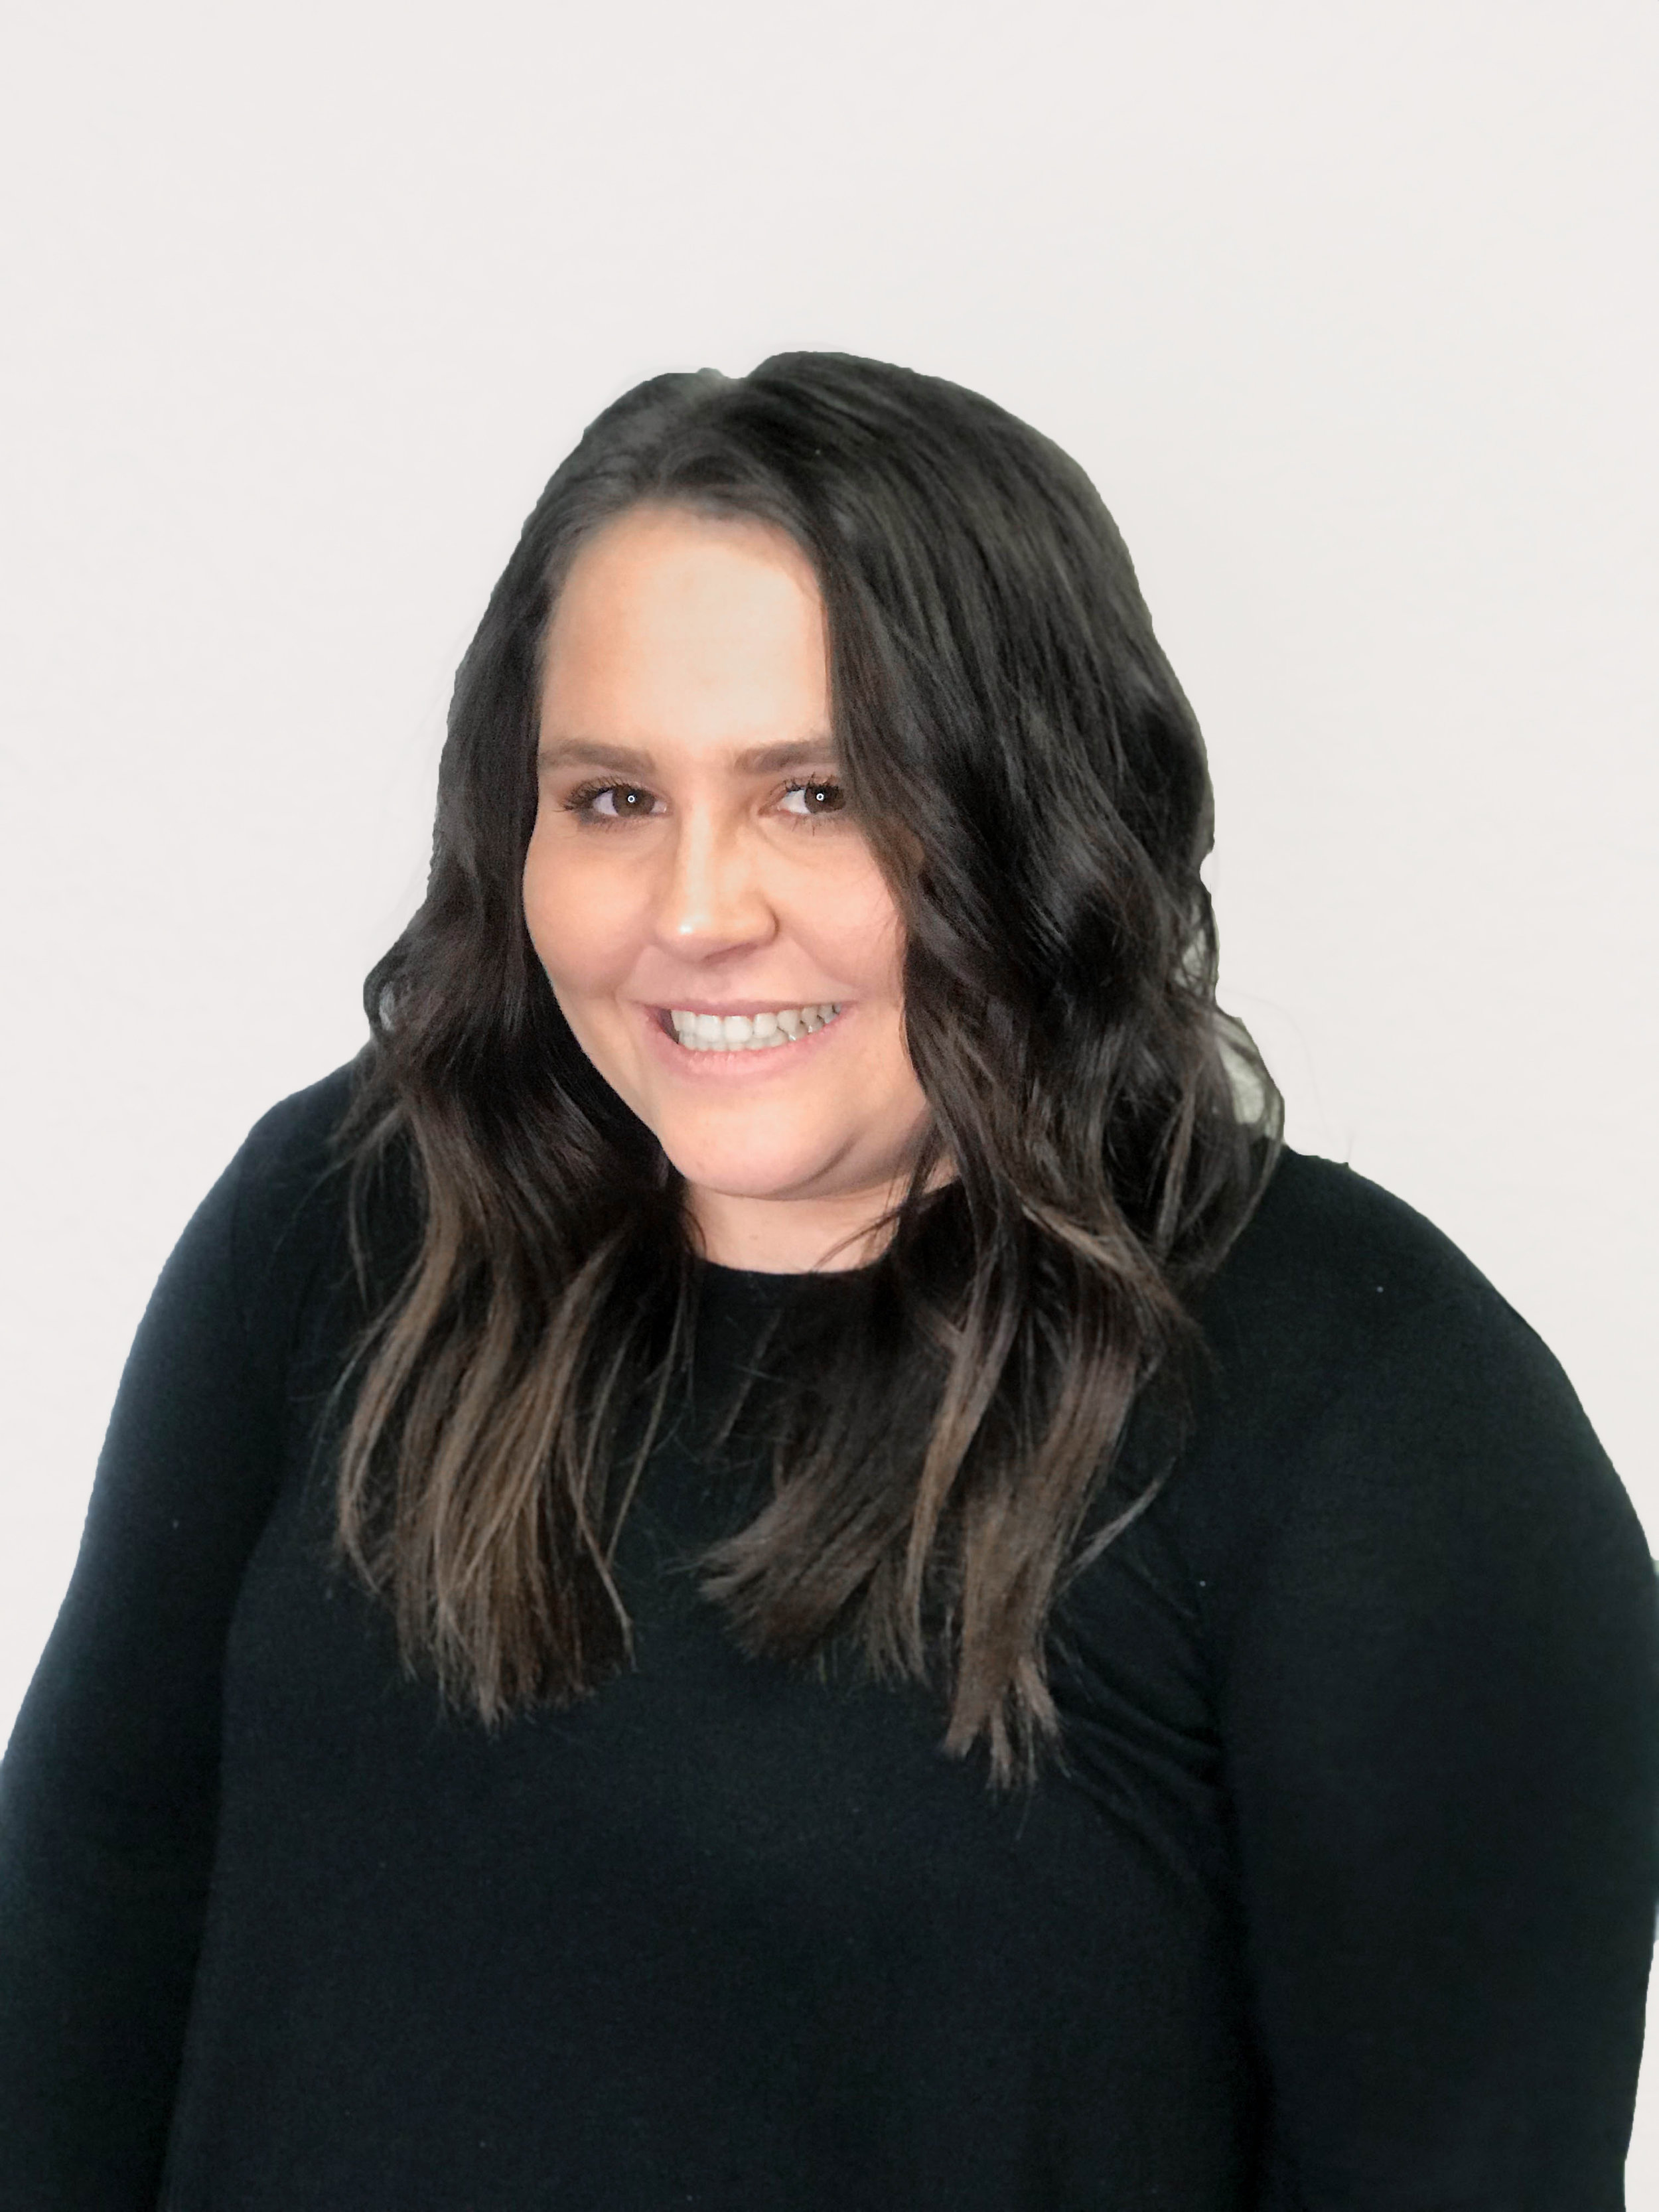 Megan Smoot - Megan is an energetic and creative hair stylist whose main goal is to make you look and feel your best. She specializes in balayage, highlights, and special event hair. Megan loves her profession and can't wait to do your hair!See Megan's Work Here!